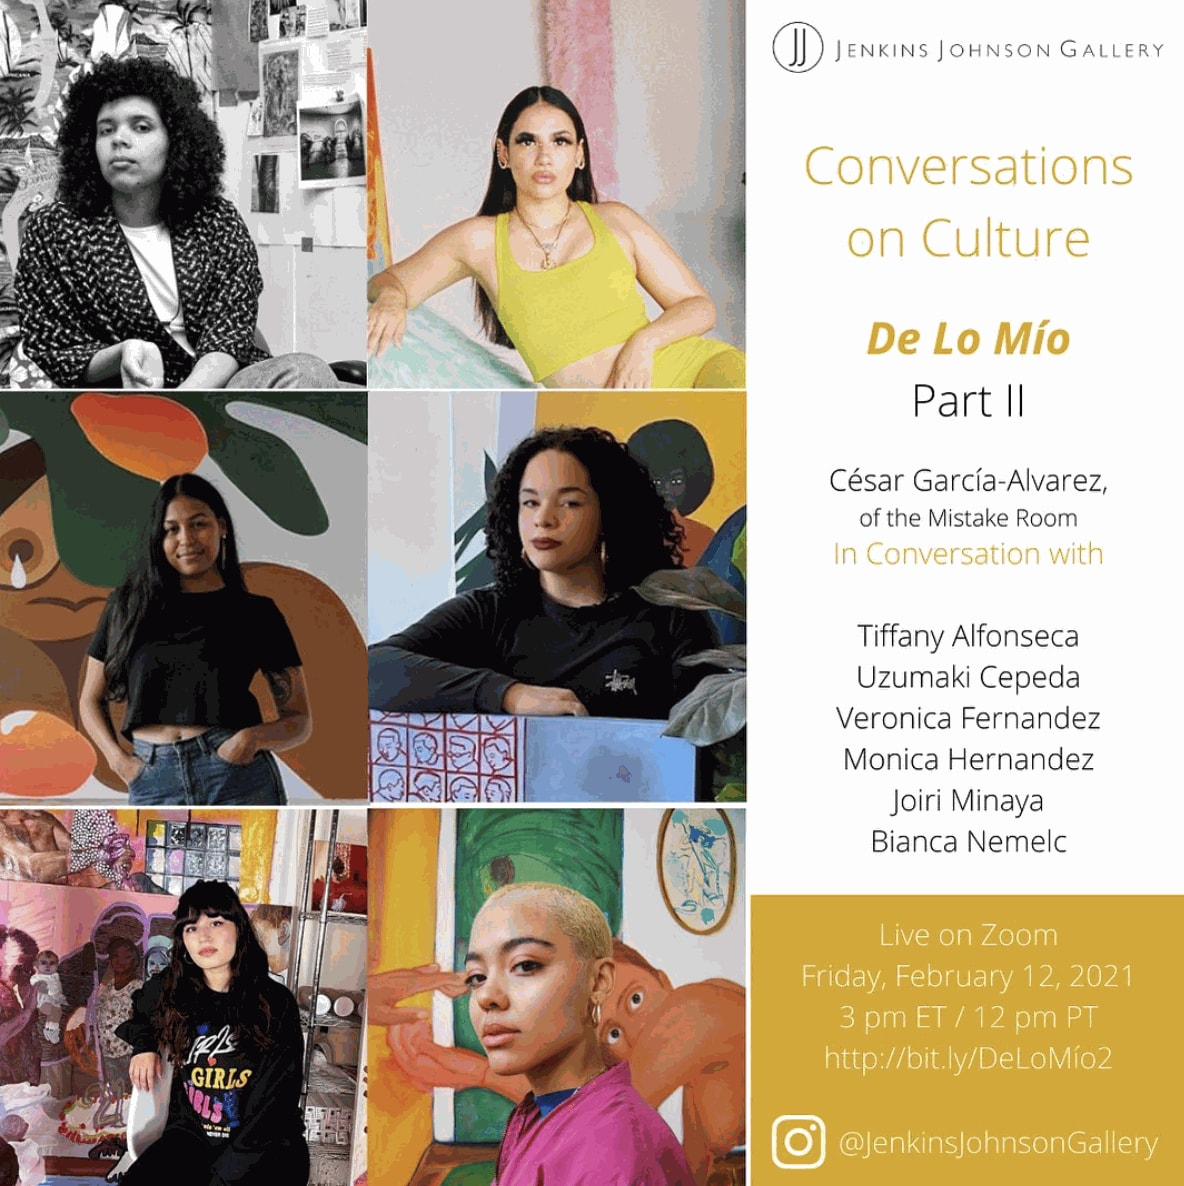 Conversations on Culture #22